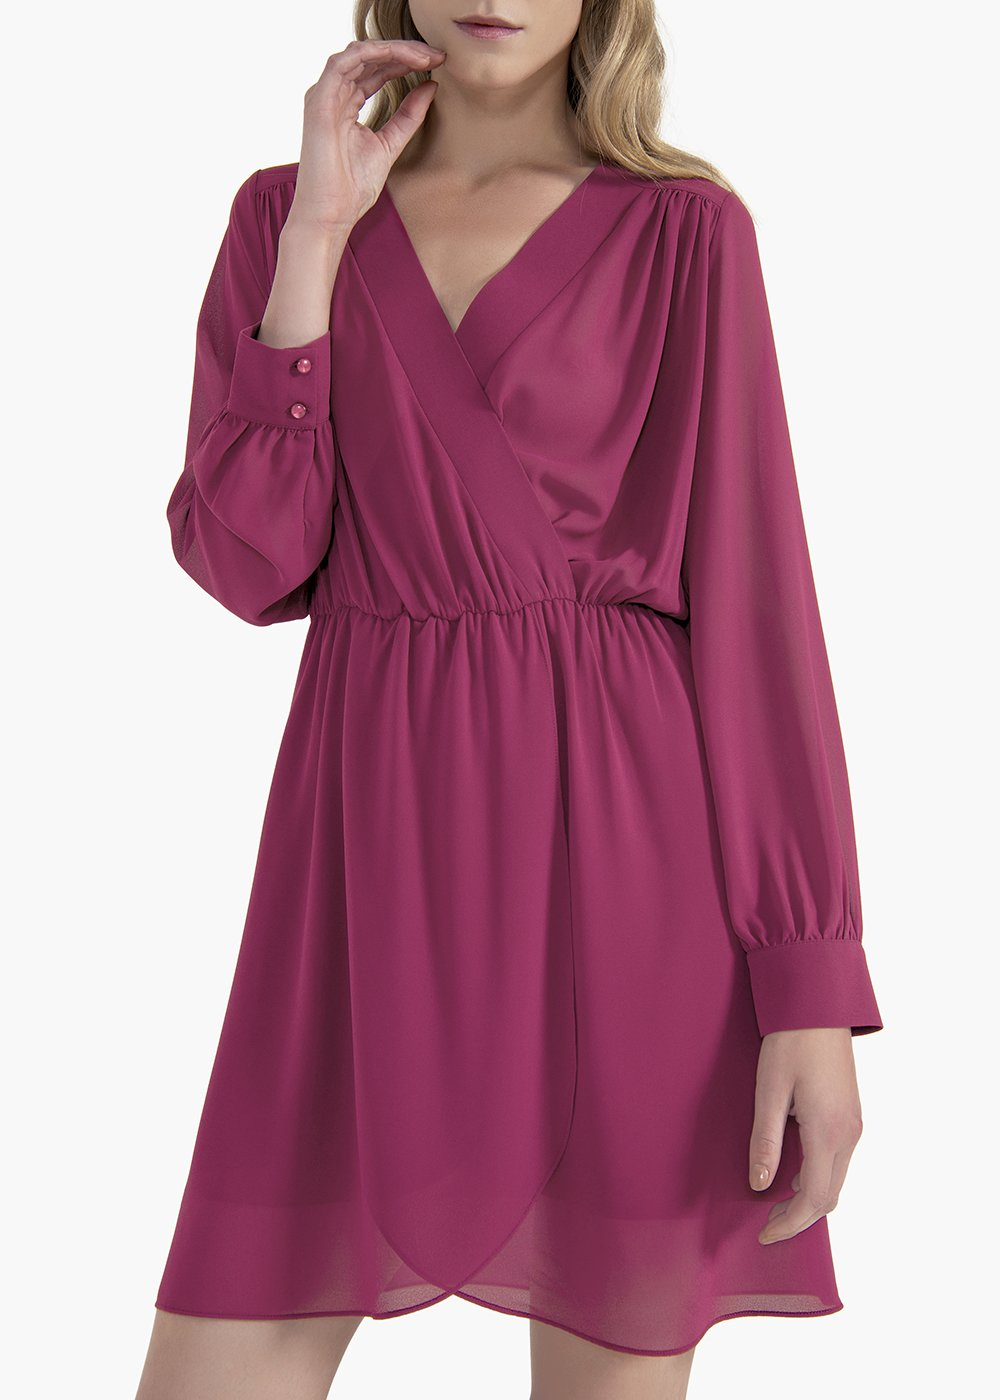 Andres georgette dress with crossover neckline